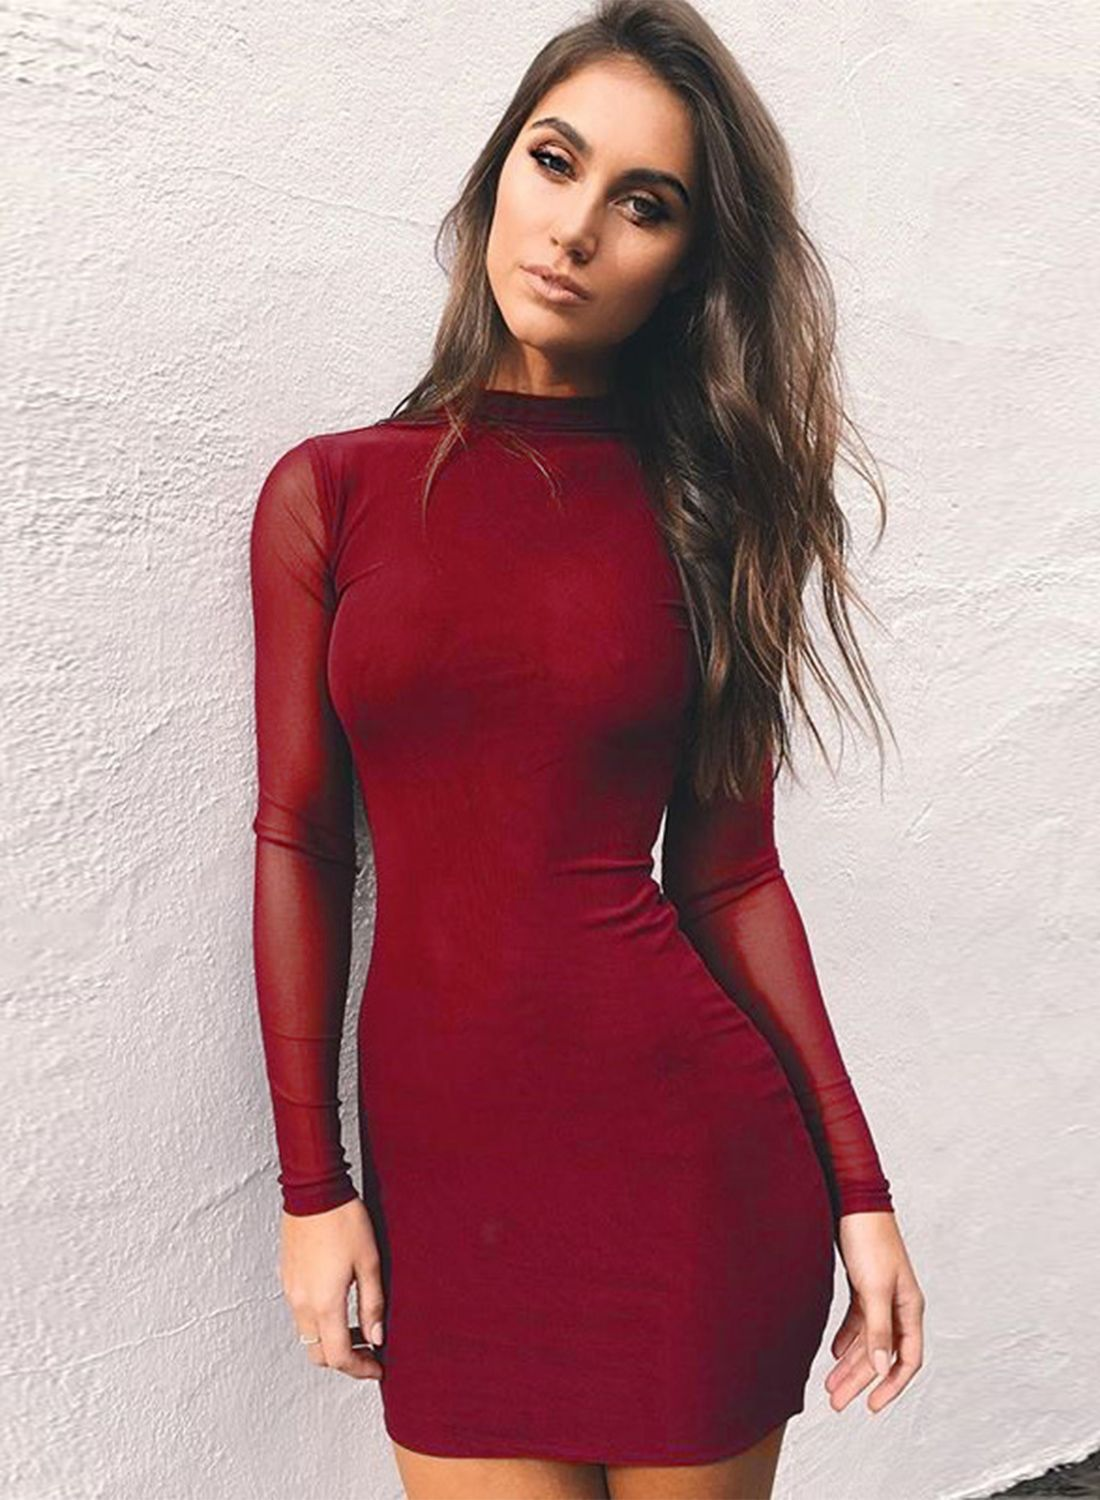 58143b5f5486 Shop Solid Mock Neck Long Sleeve Mesh Bodycon Dress at victoriaswing